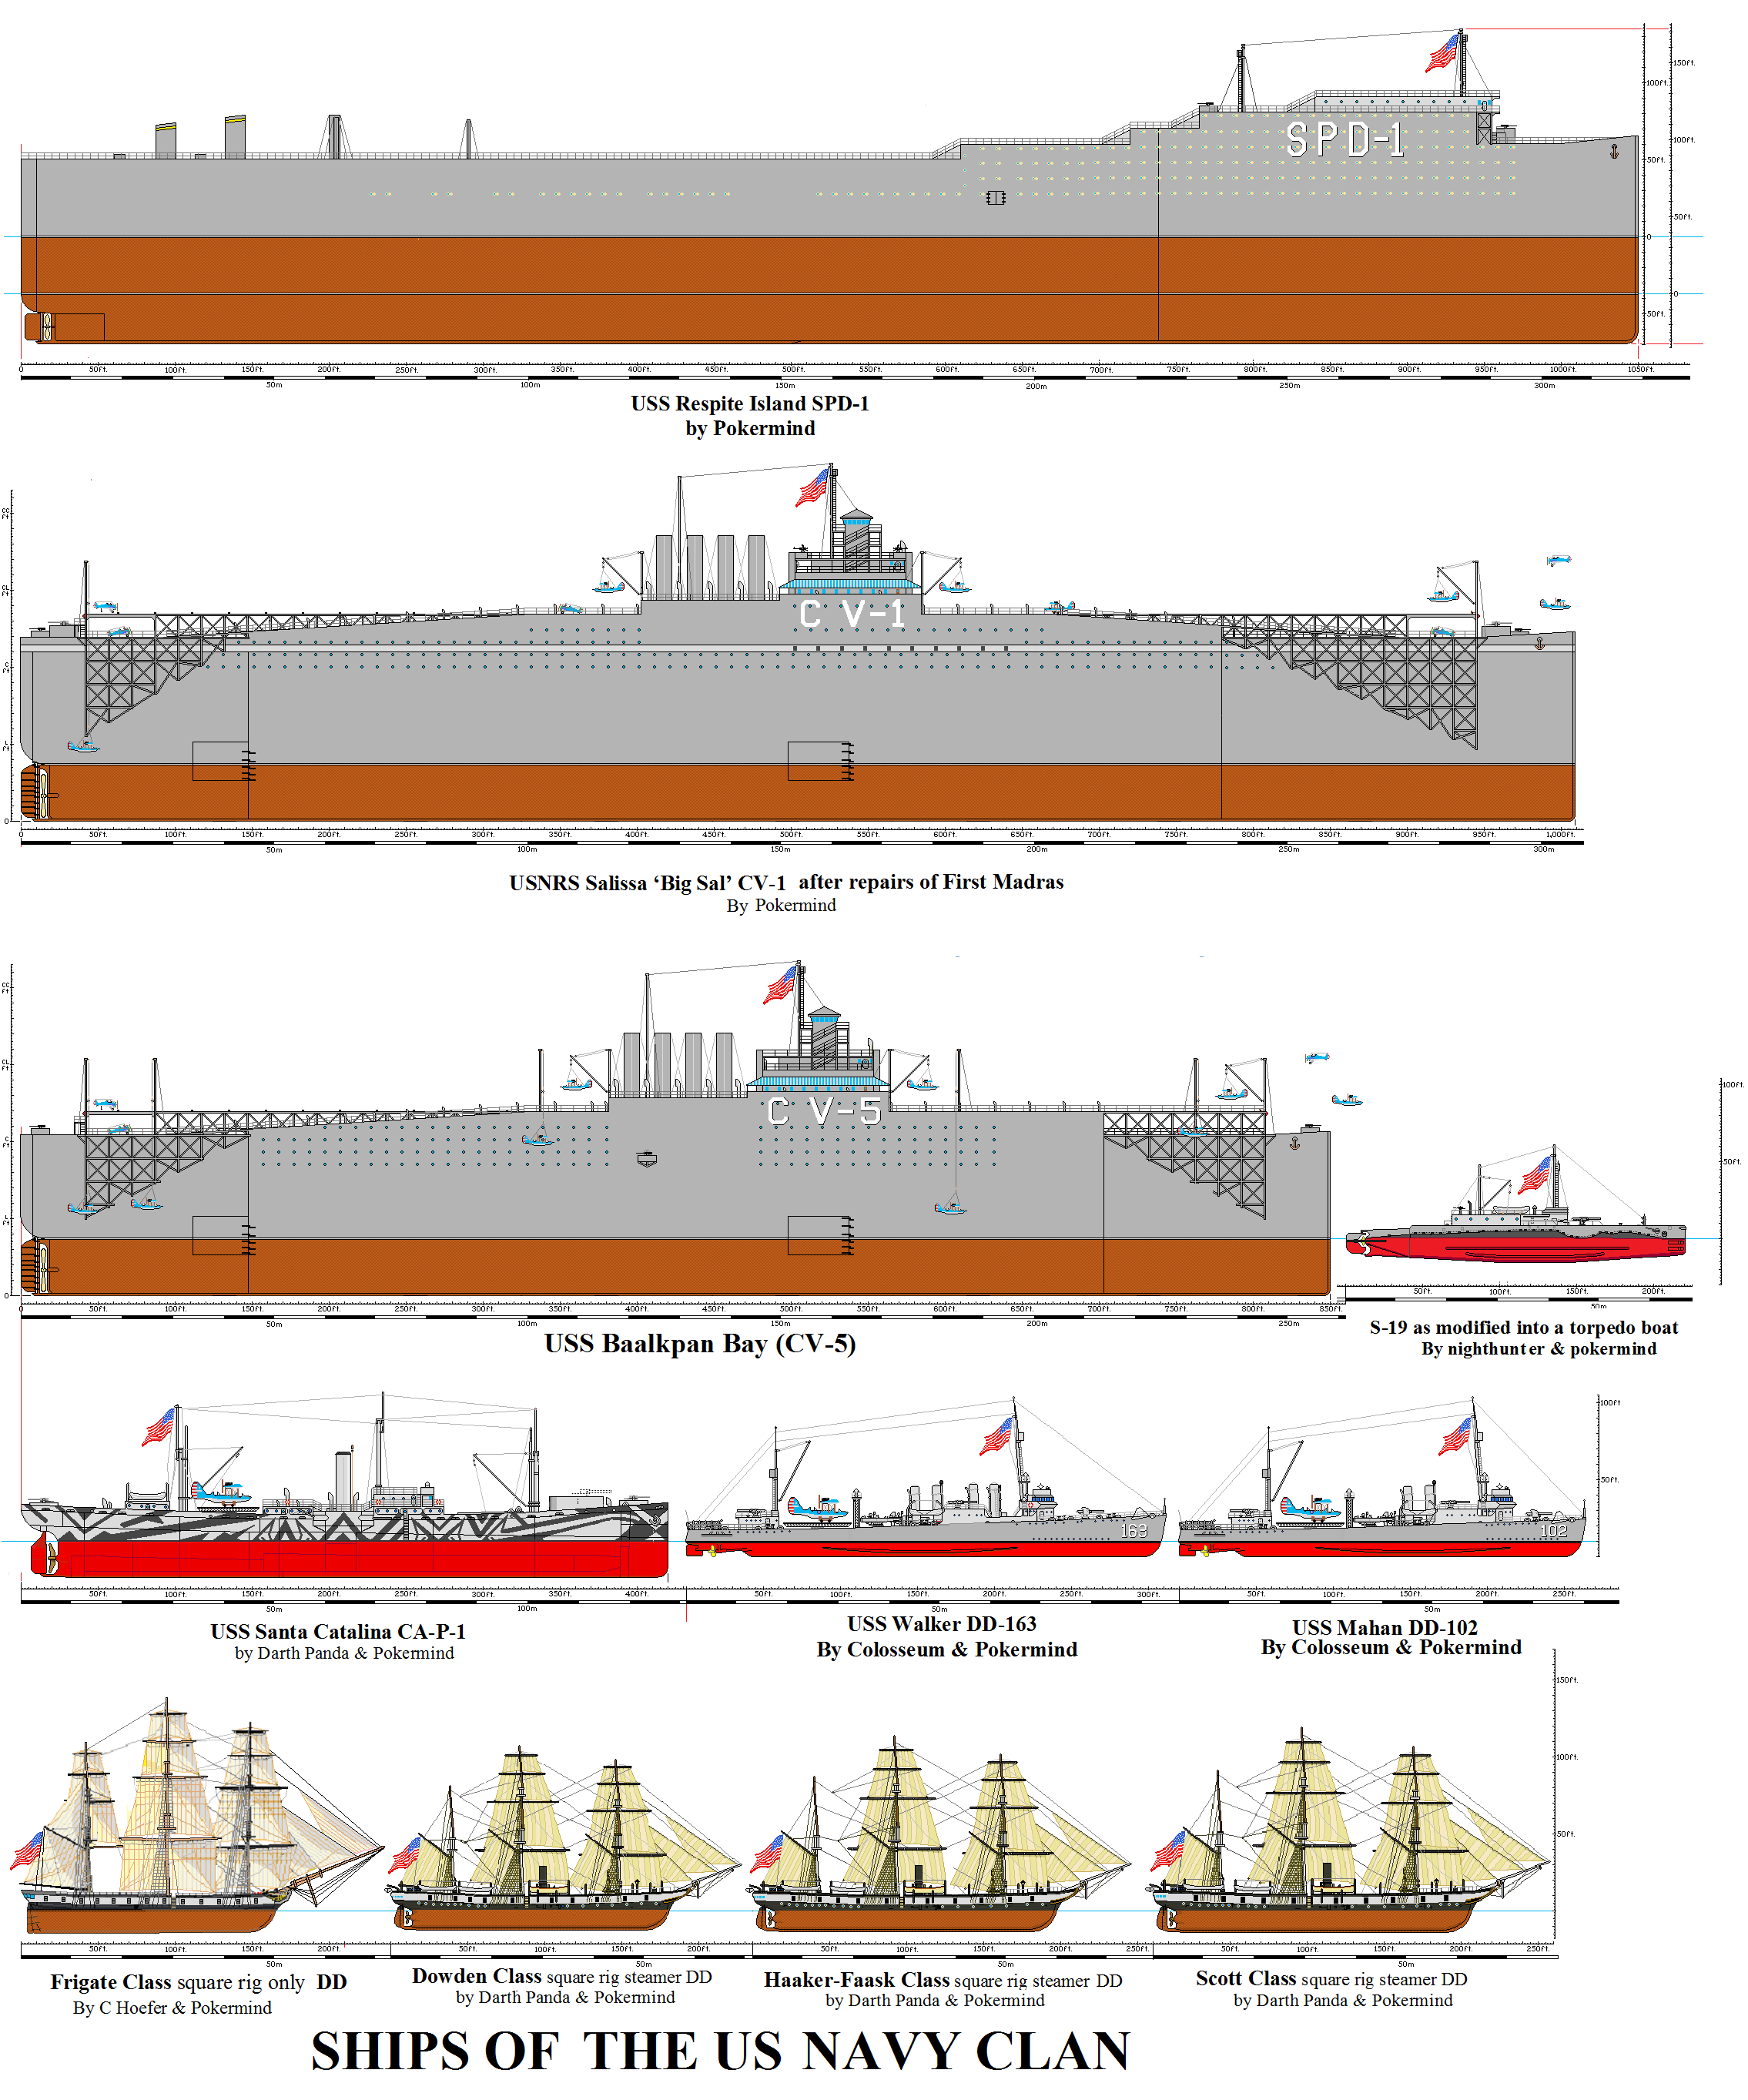 Ships of the US NAVY CLAN in the Destroymen Series by